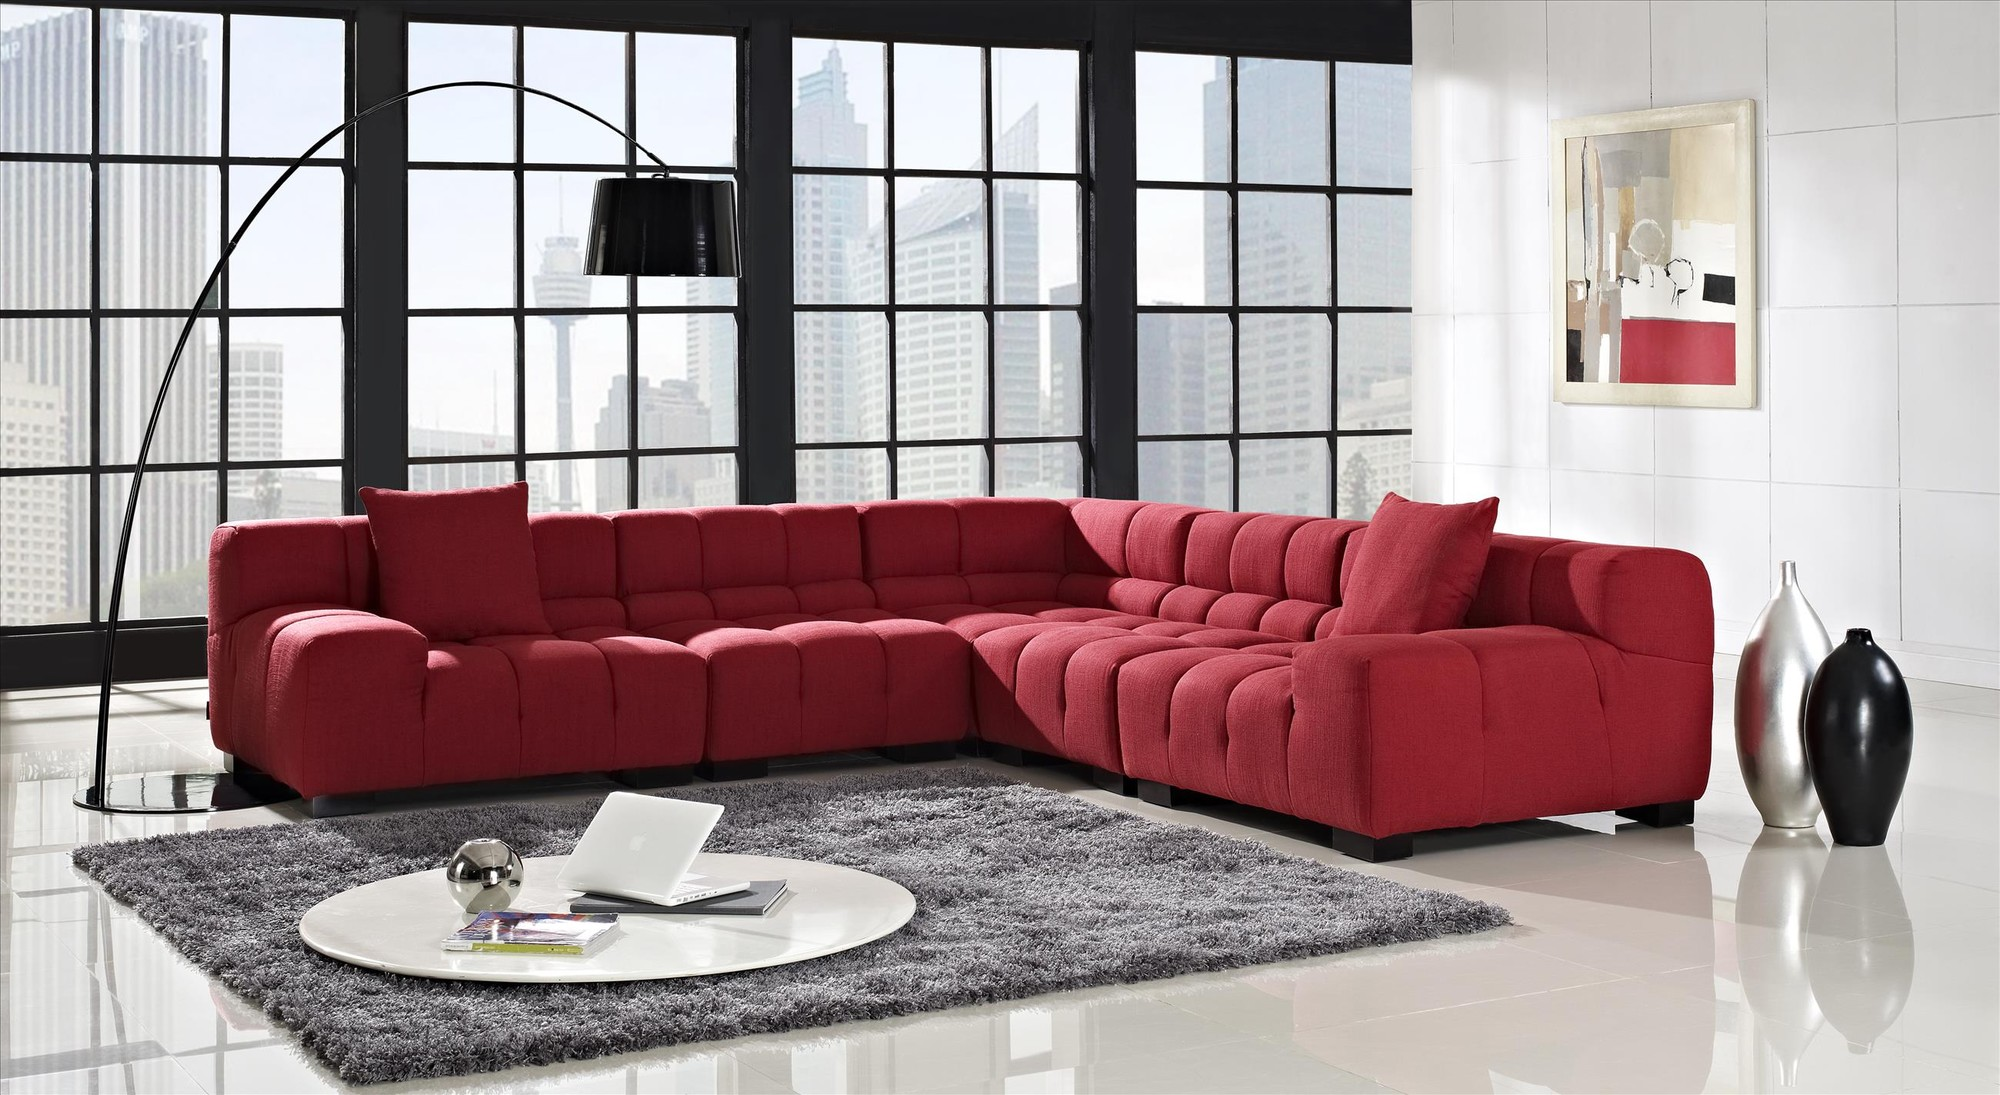 How to choose modern sectional sofas for your home for Choosing furniture for a small living room